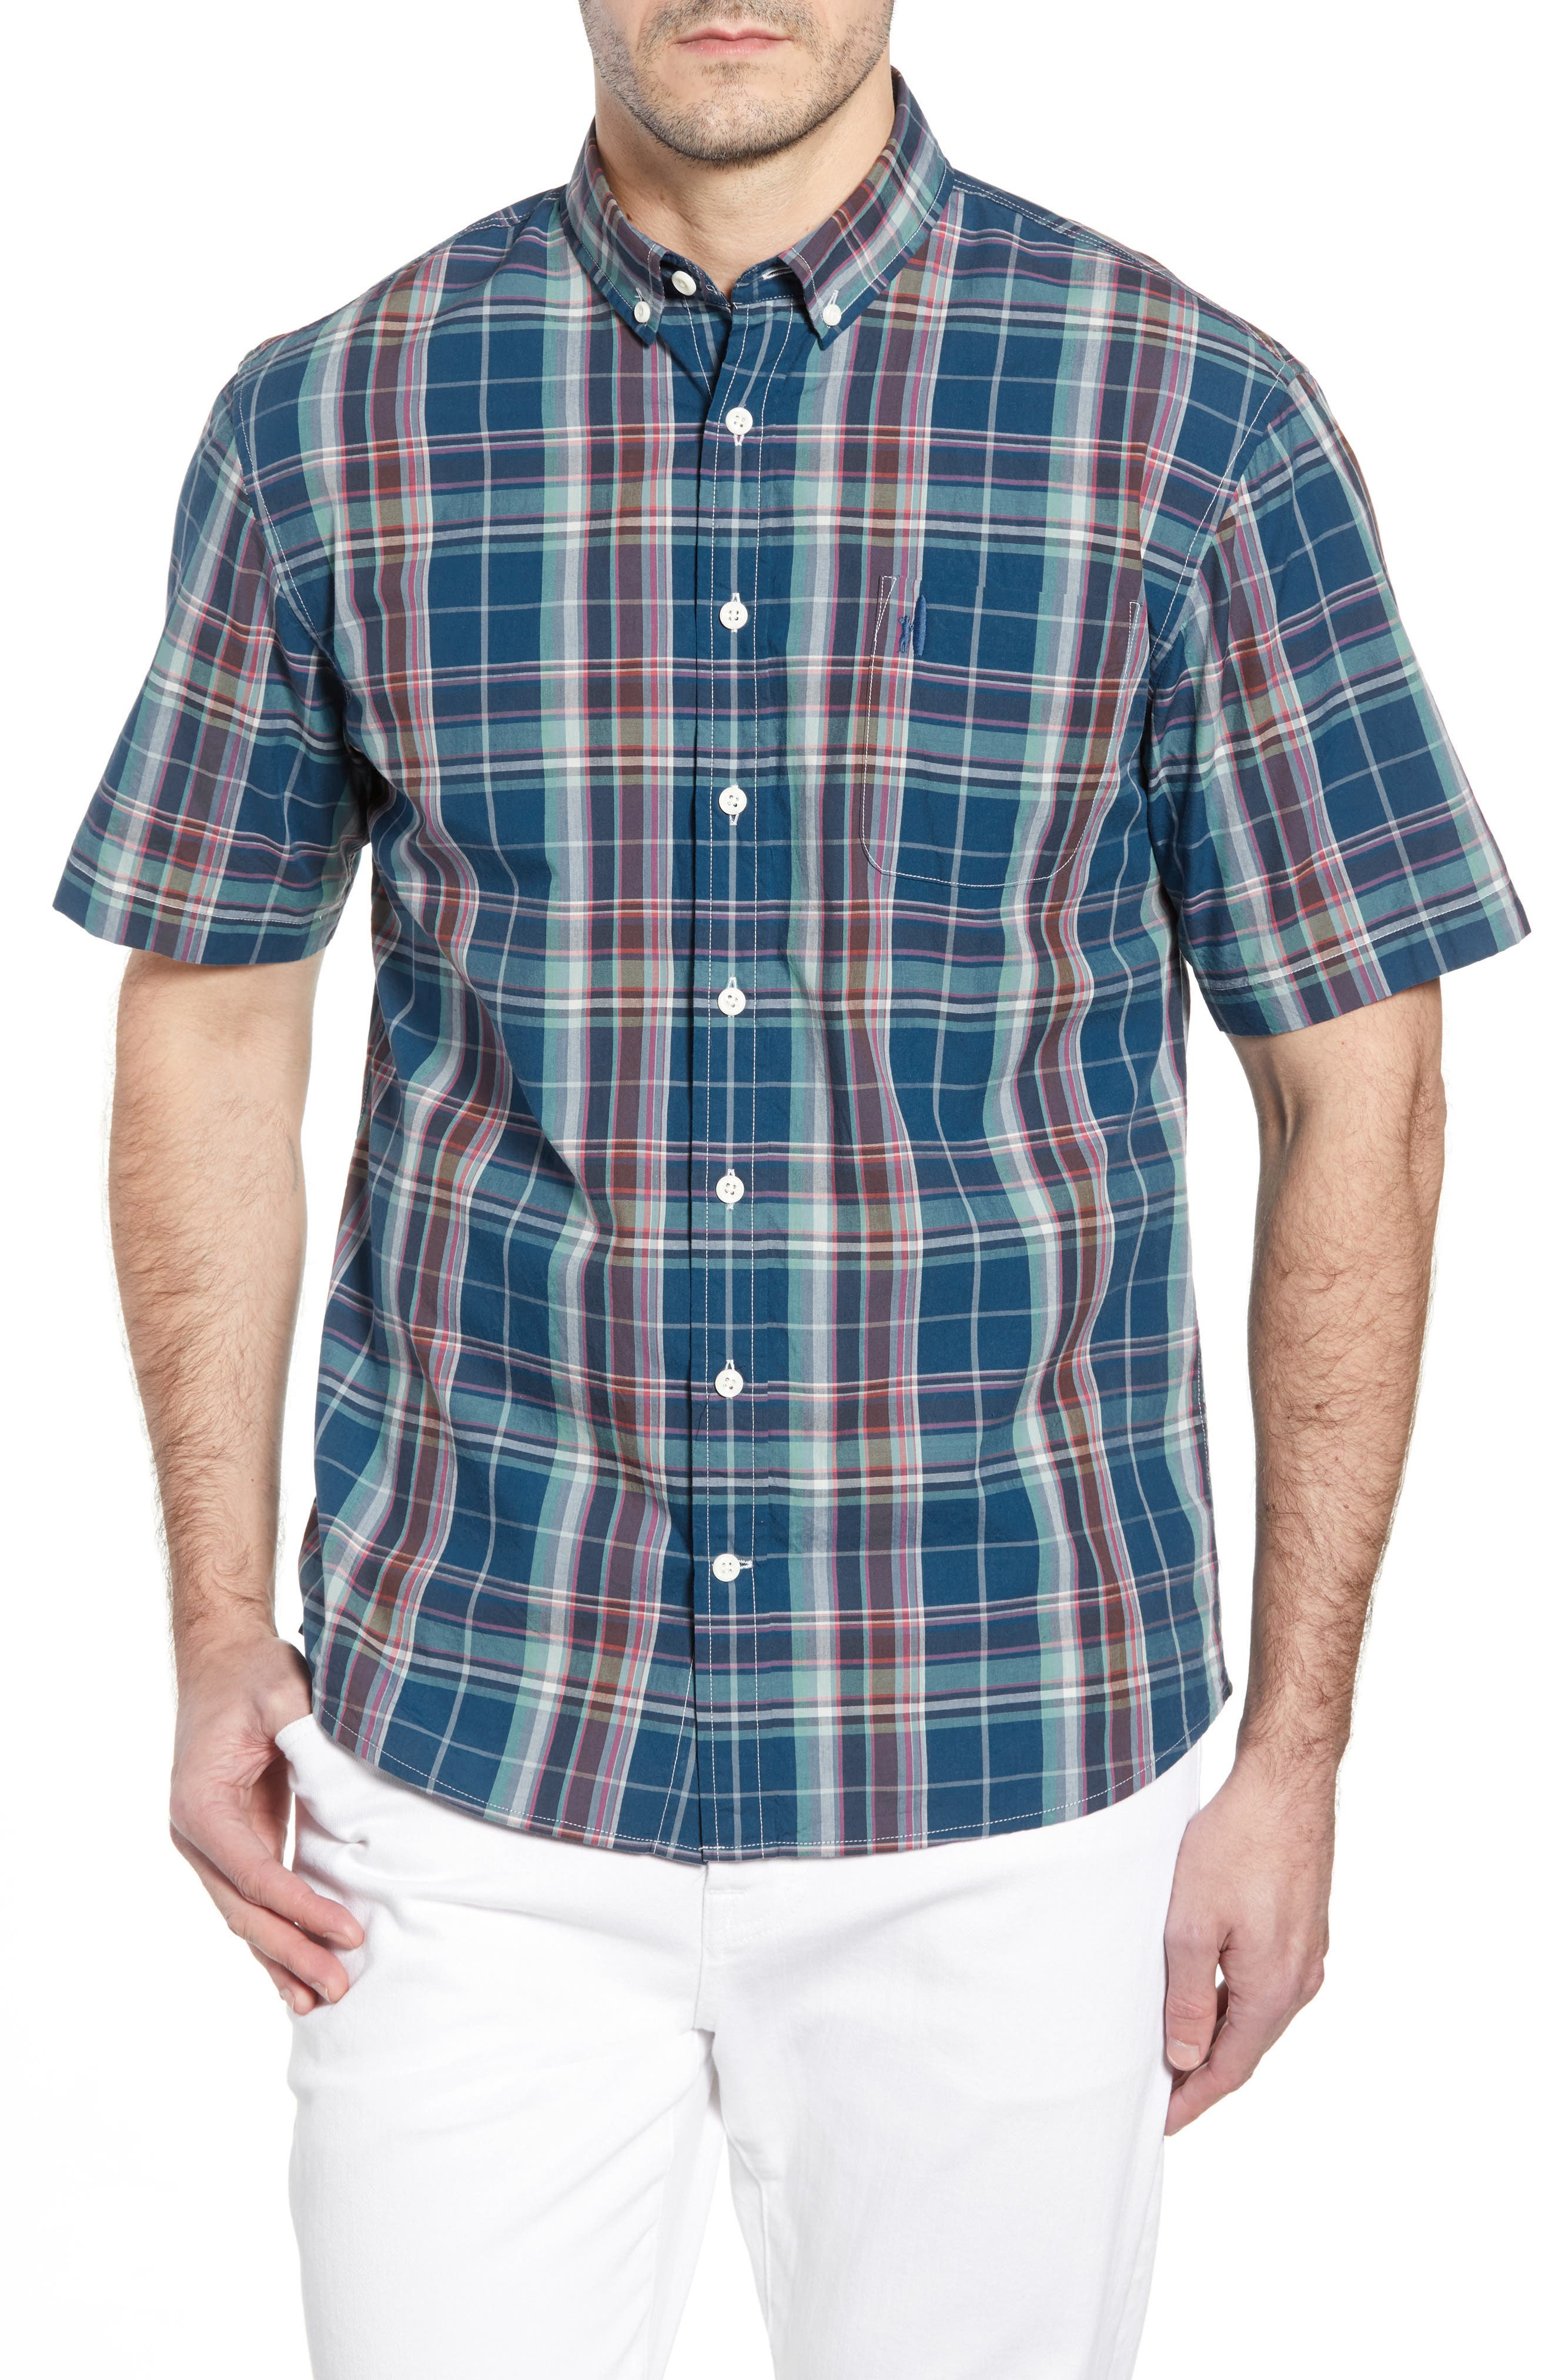 Exum Classic Fit Plaid Sport Shirt,                         Main,                         color, LAKE